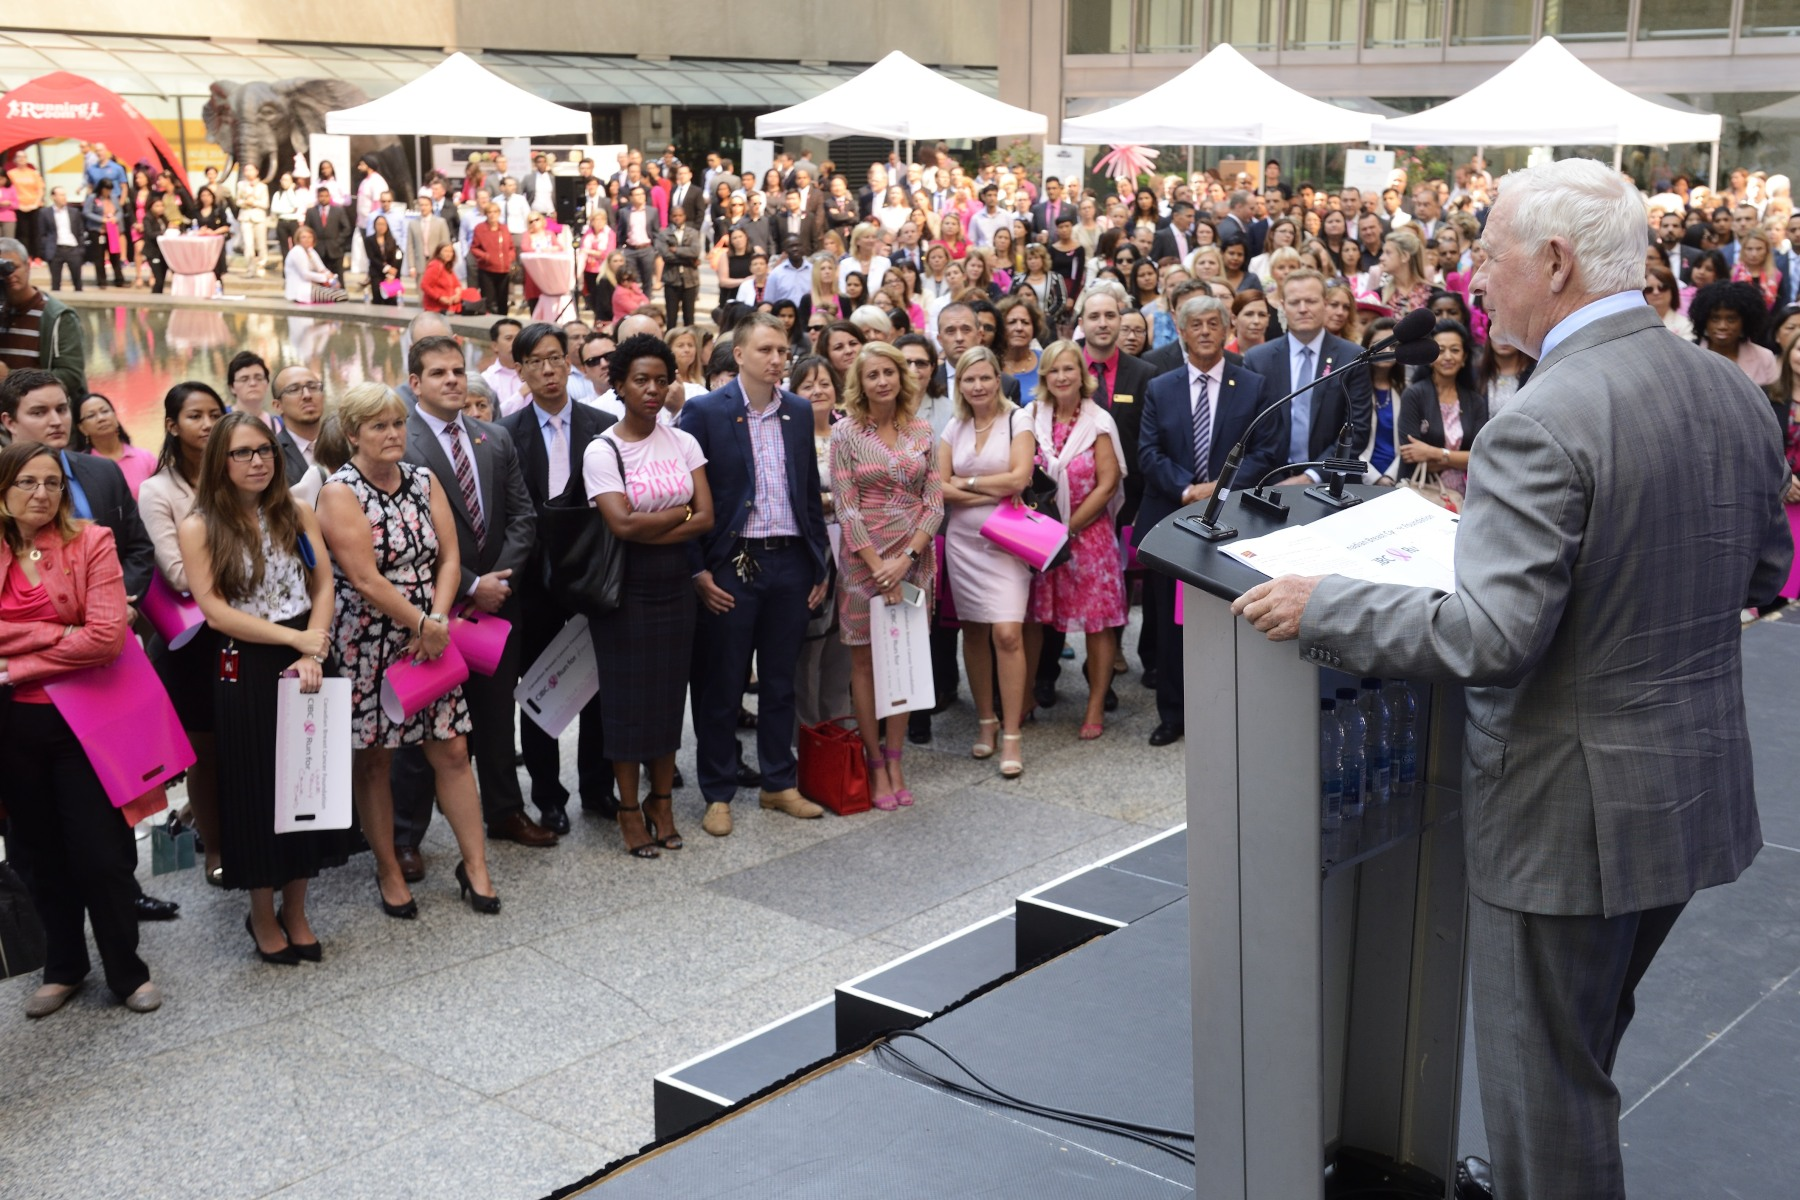 In Toronto, as in other cities across Canada, Think Pink Week engages employees, clients and community members, provides a forum to share information regarding breast cancer, and celebrates the community that comes together to support those living with the disease.